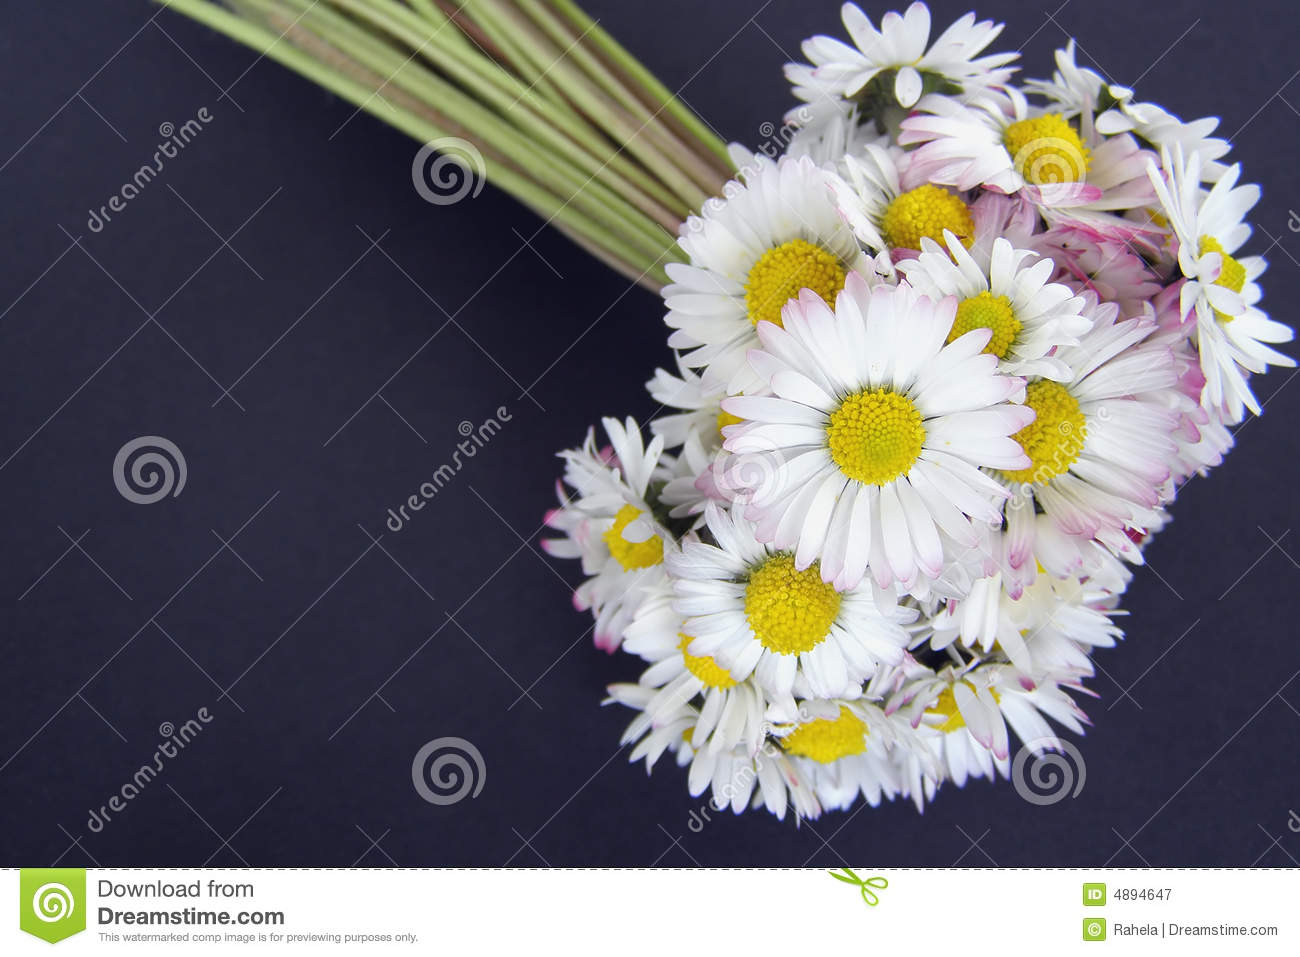 Daisy Flowers Bouquet Stock Image Image Of Natural Flora 4894647